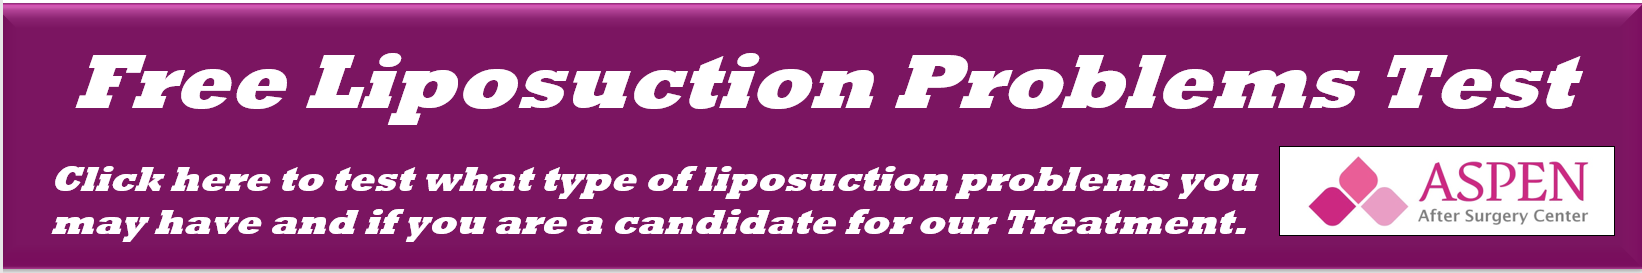 Free Liposuction Problems Test